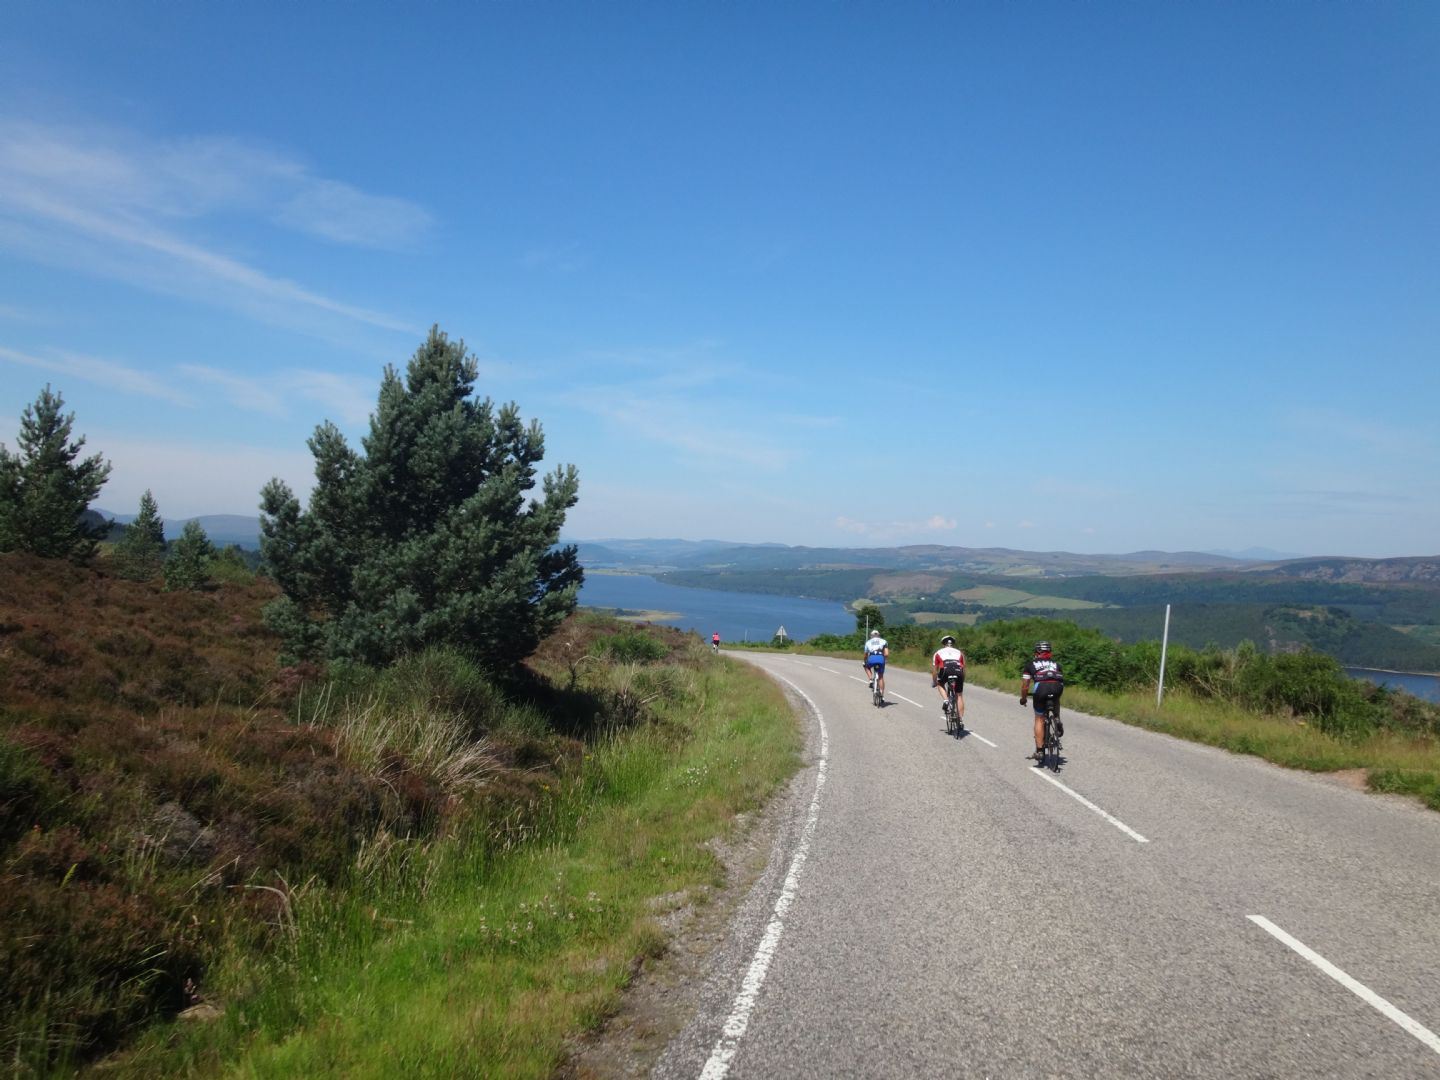 _Customer.94953.17871.jpg - UK - Land's End to John O'Groats Classic (16 days) - Guided Road Cycling Holiday - Road Cycling